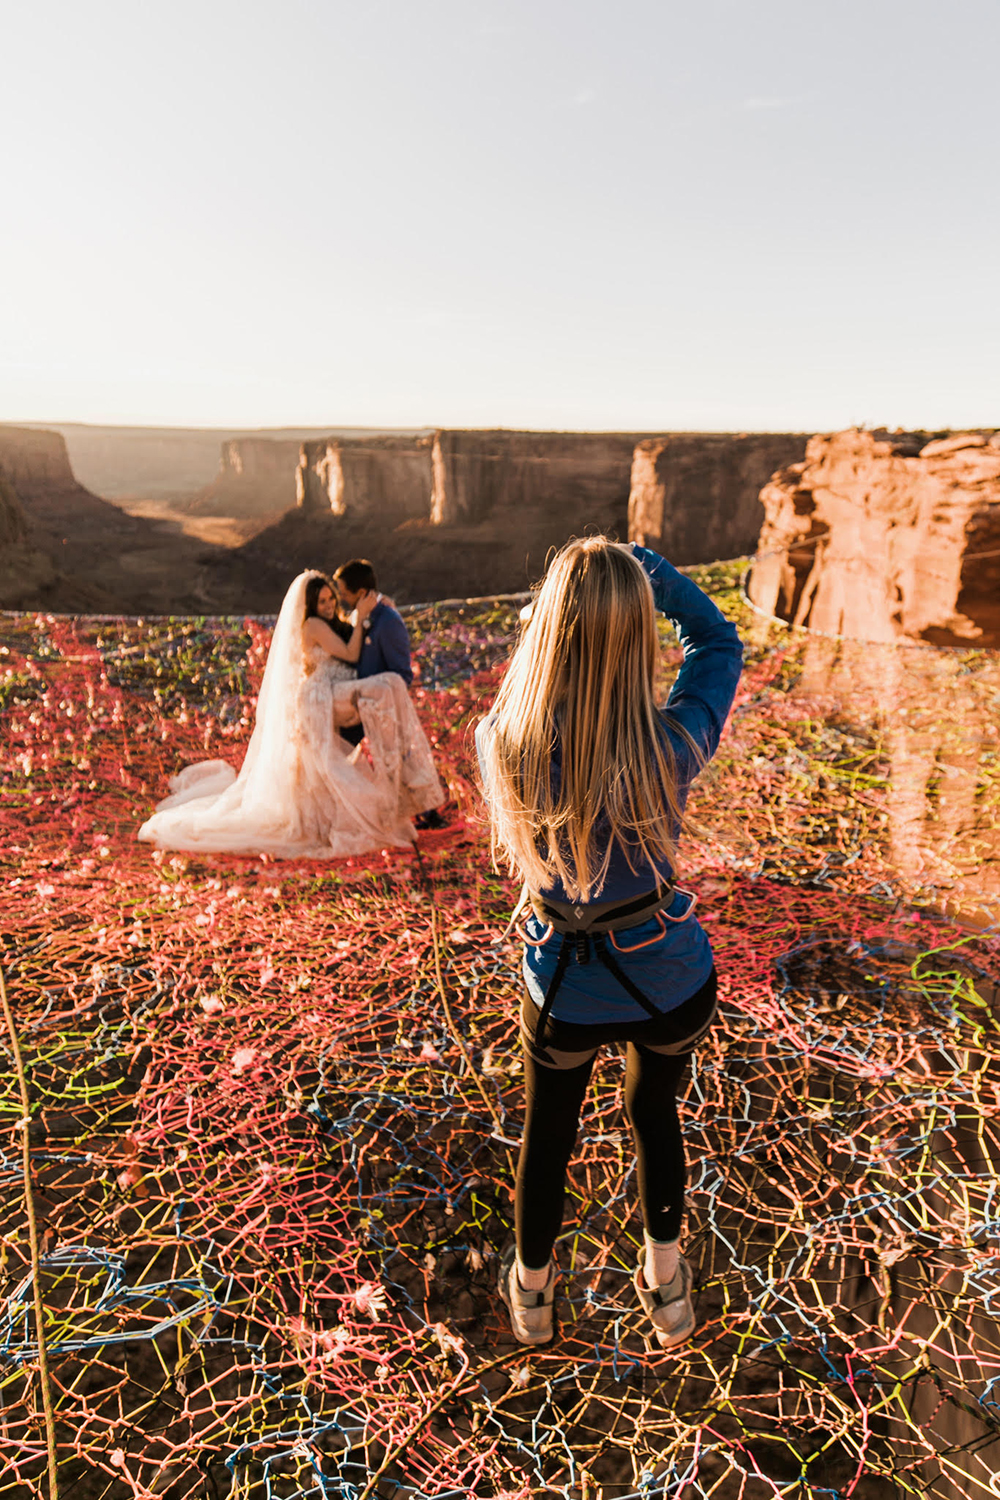 Photographing a wedding 400 feet in the air